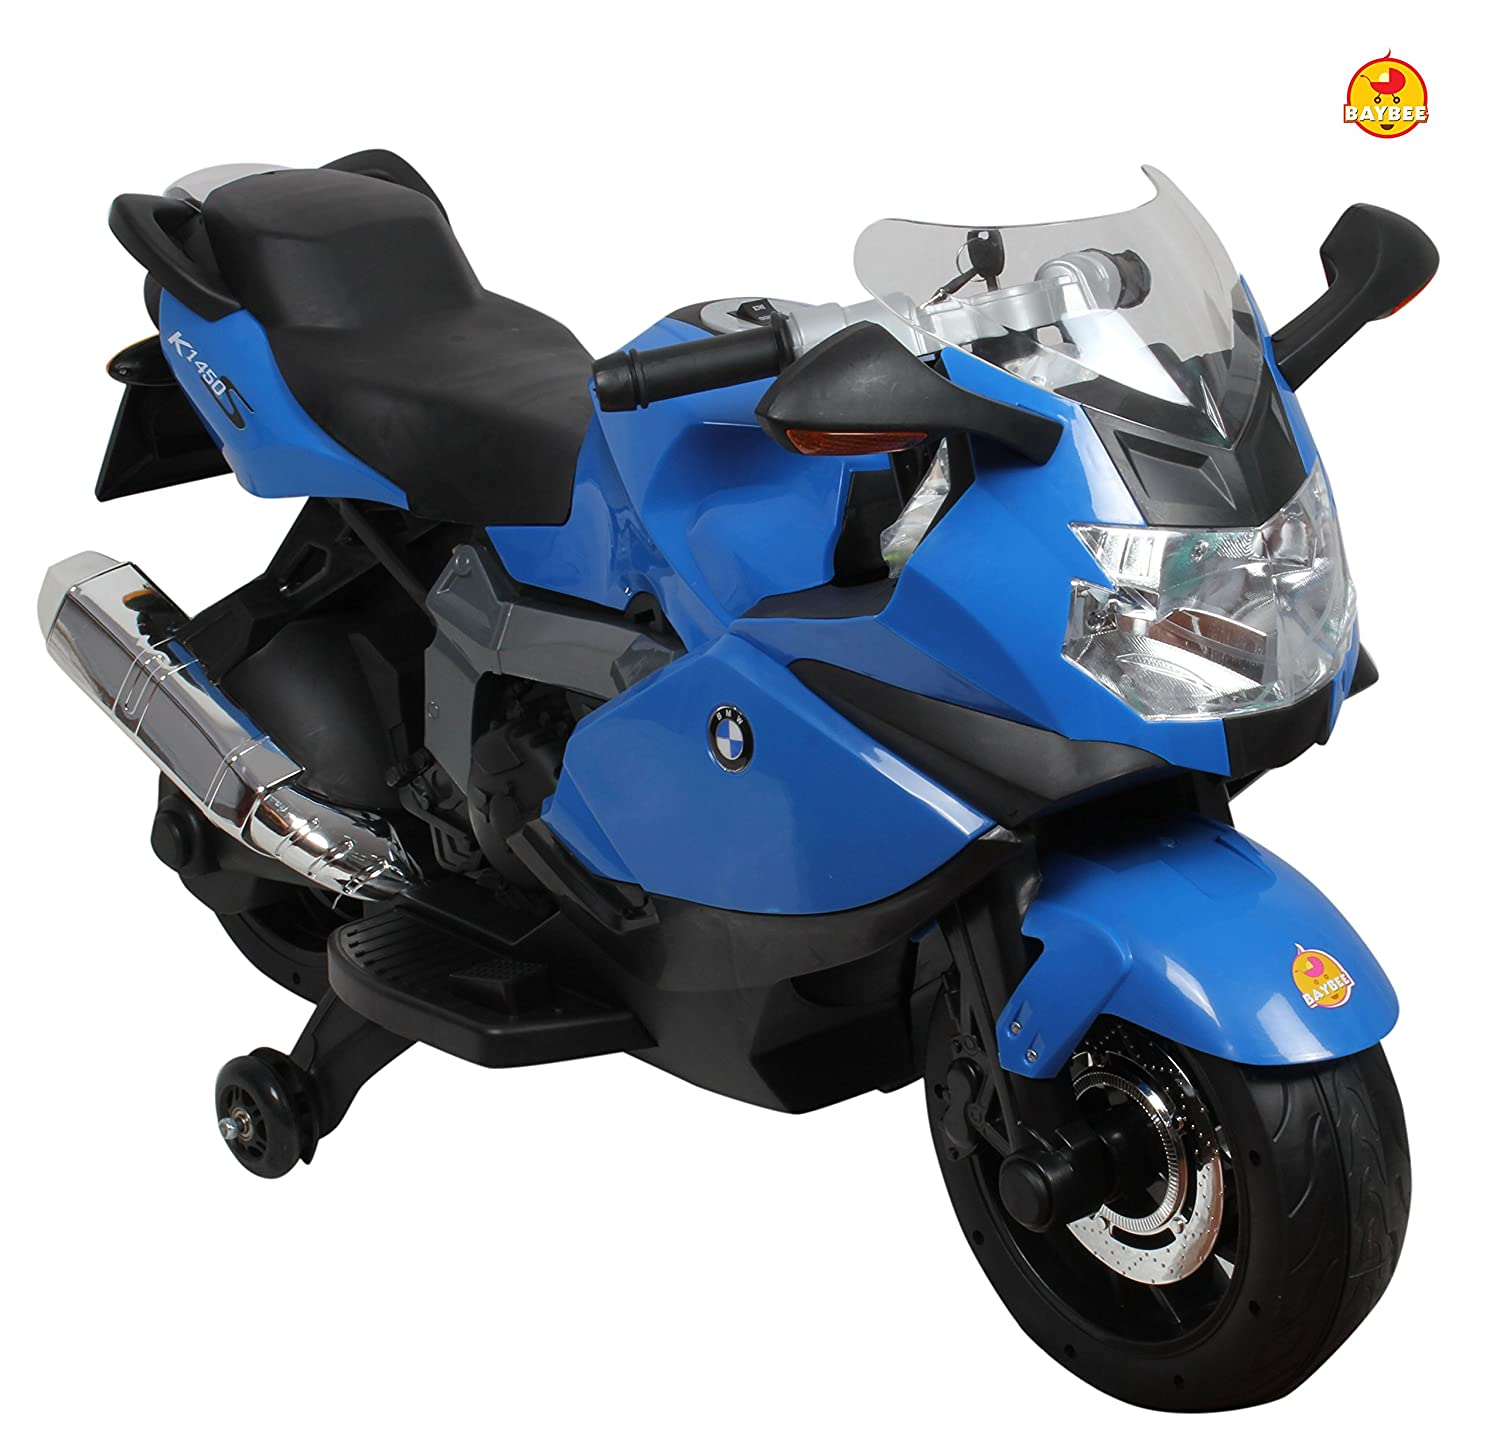 Buy Baybee Officially Licensed Bmw Battery Operated Bike Blue Online At Low Prices In India Amazon In